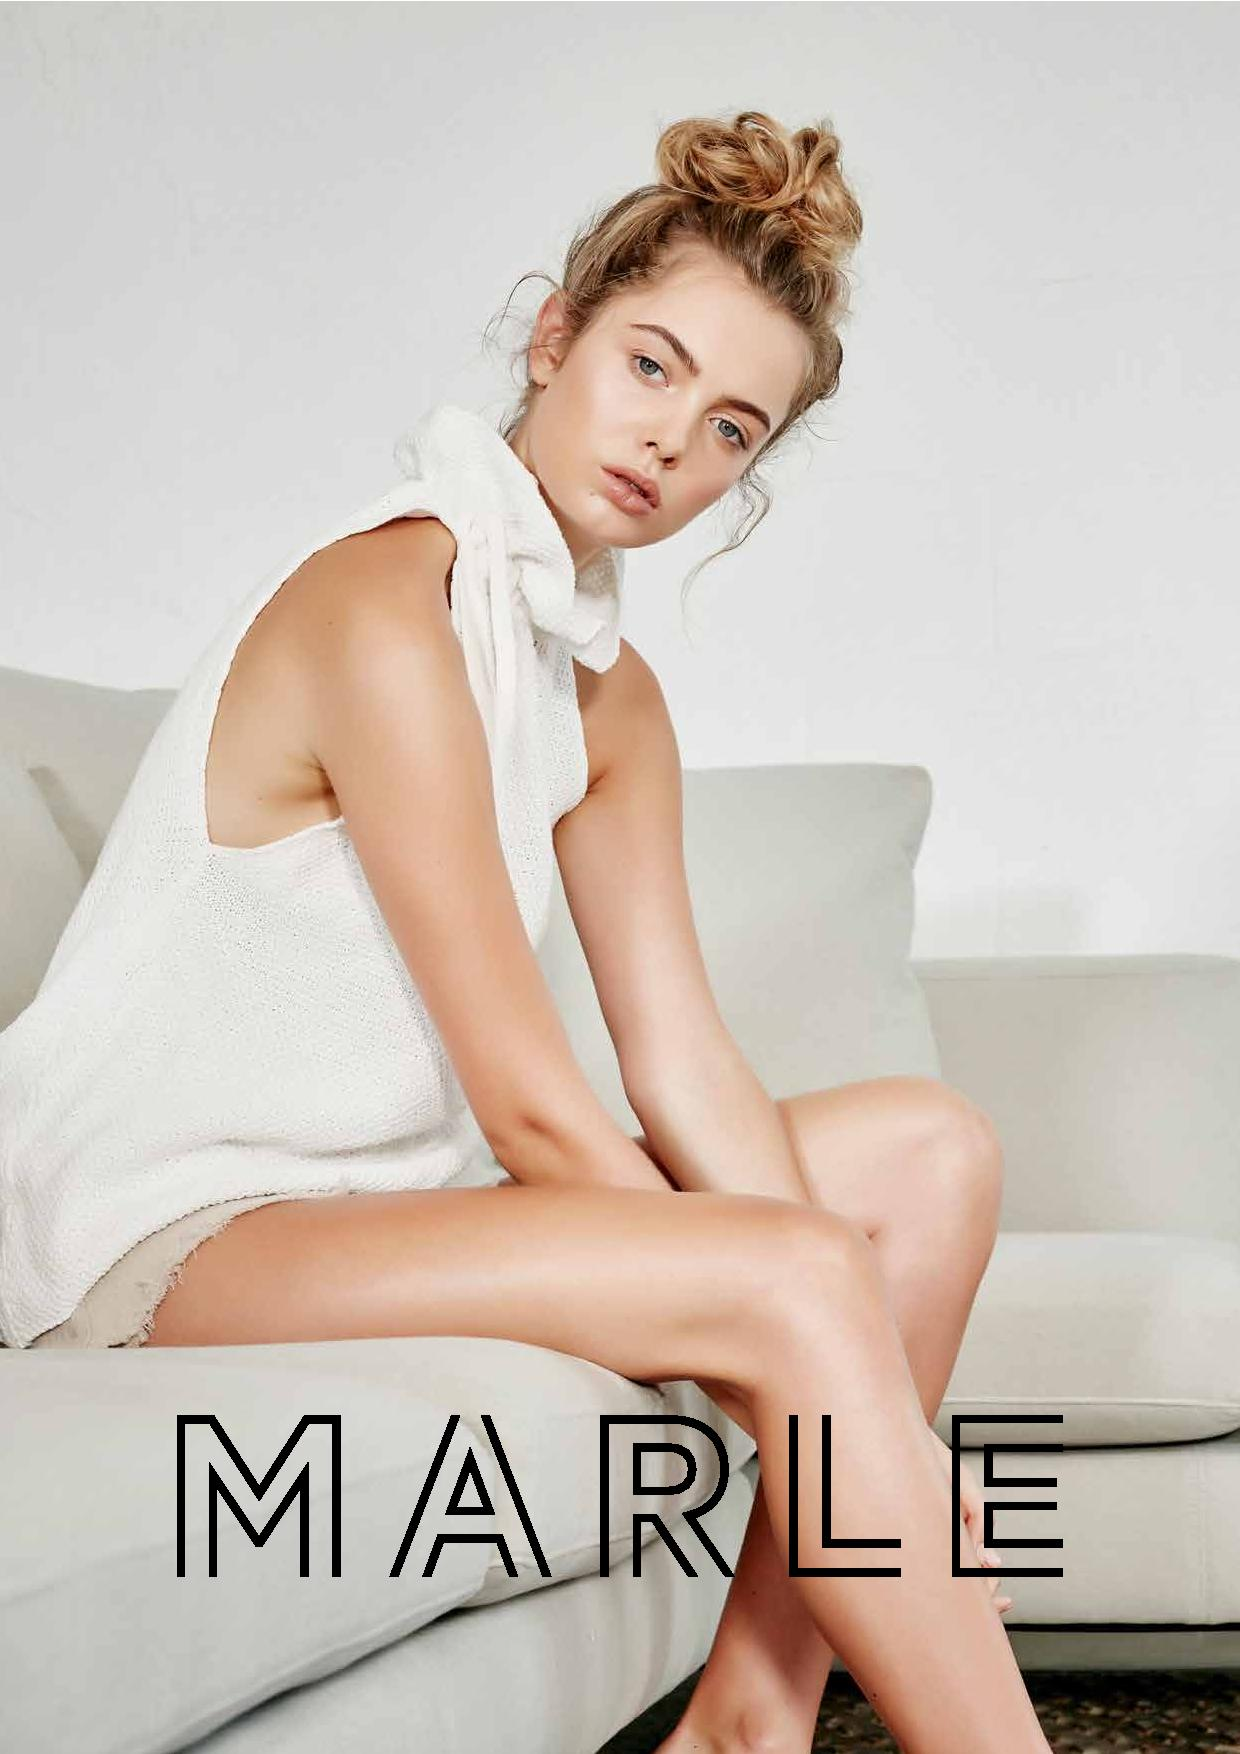 Marle-page-001